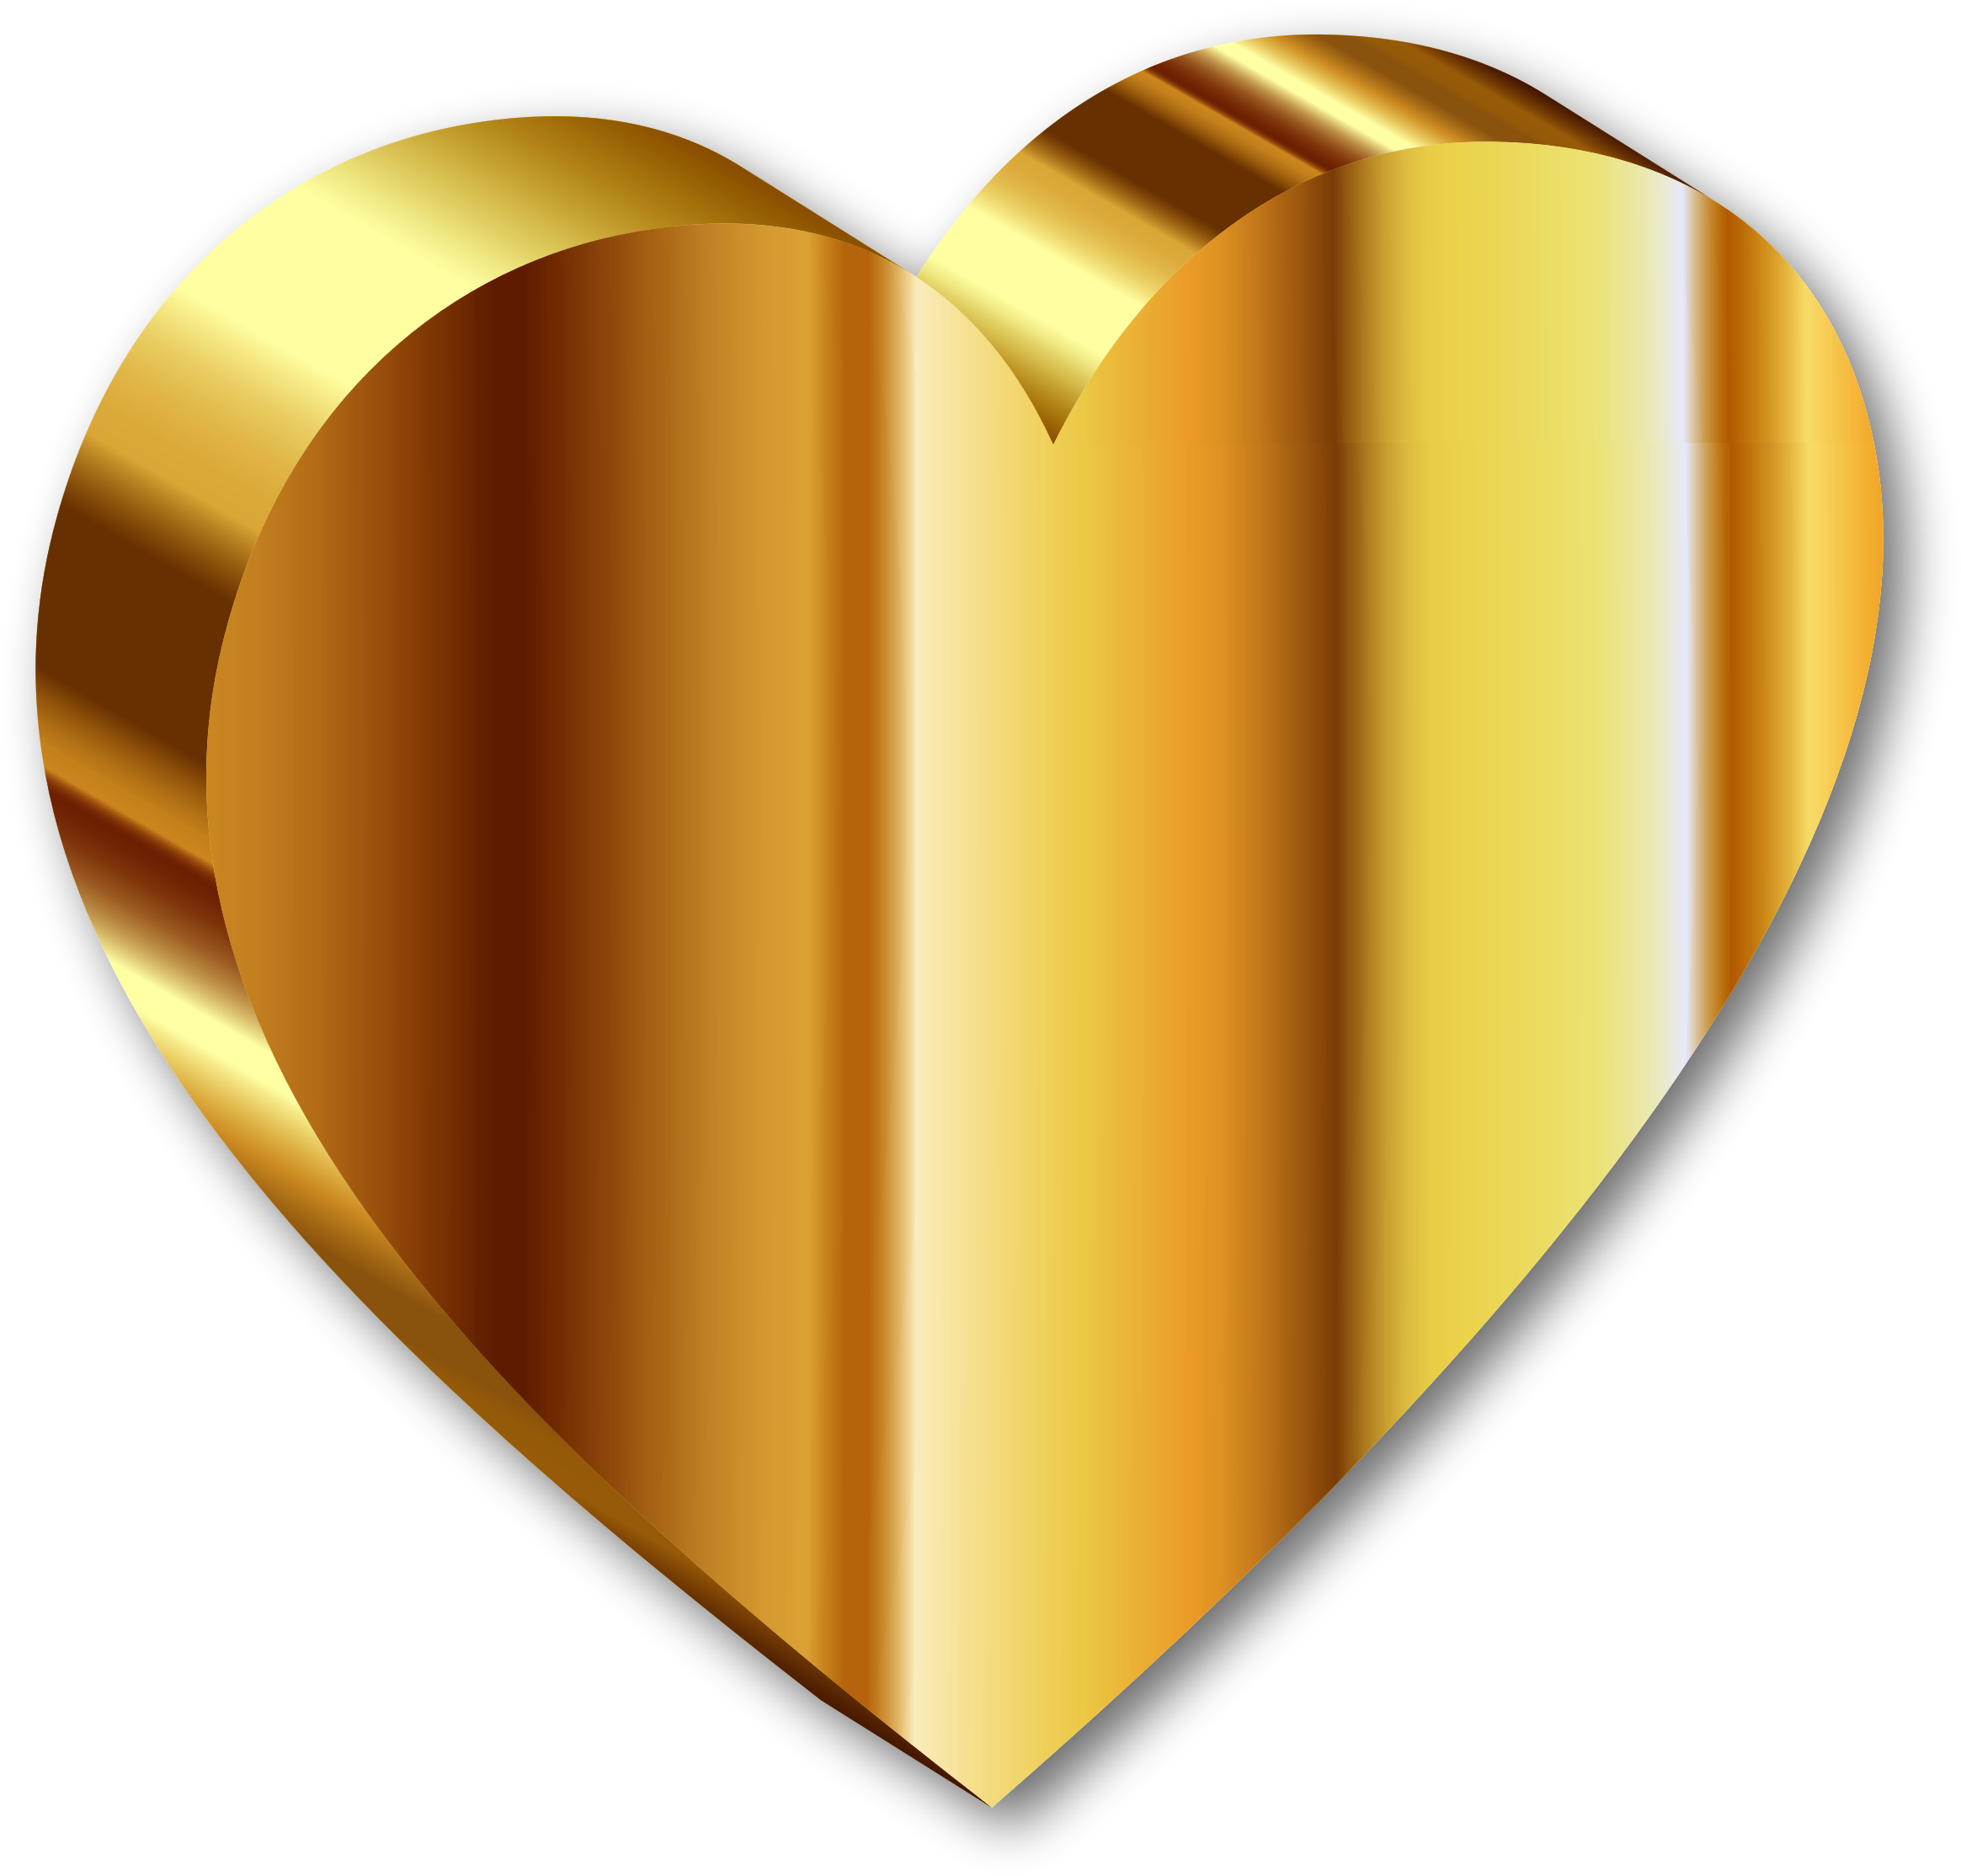 3D Heart Of Gold Deeper Color With Shadow by GDJ